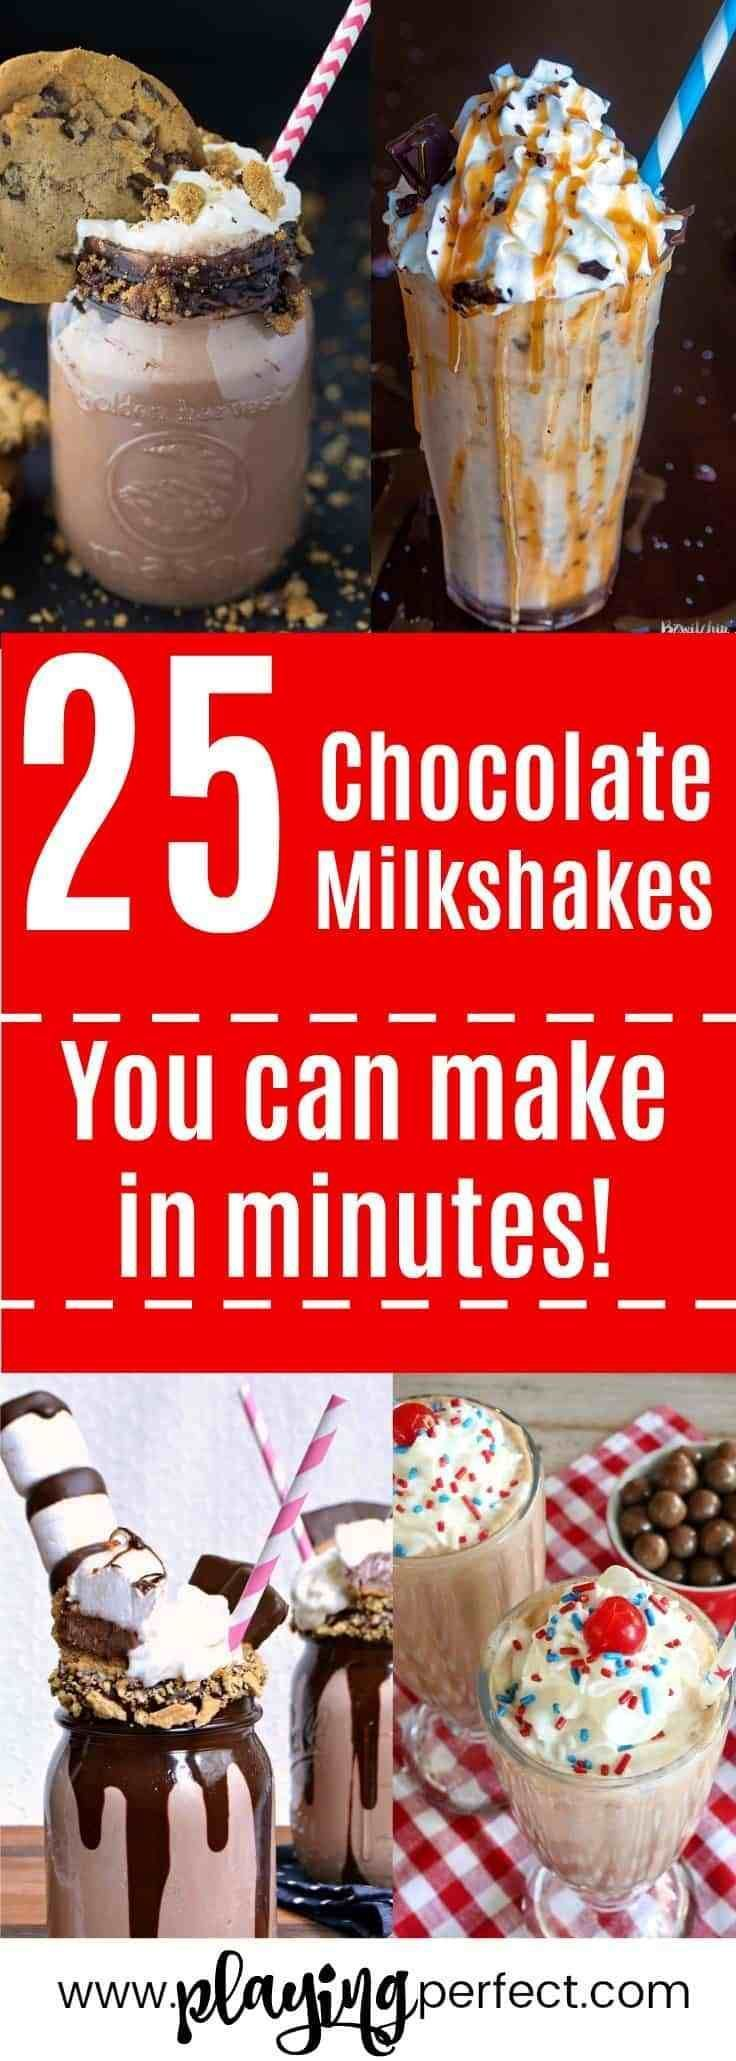 25 Chocolate Milkshakes That Will Make You Want To Lick The Glass